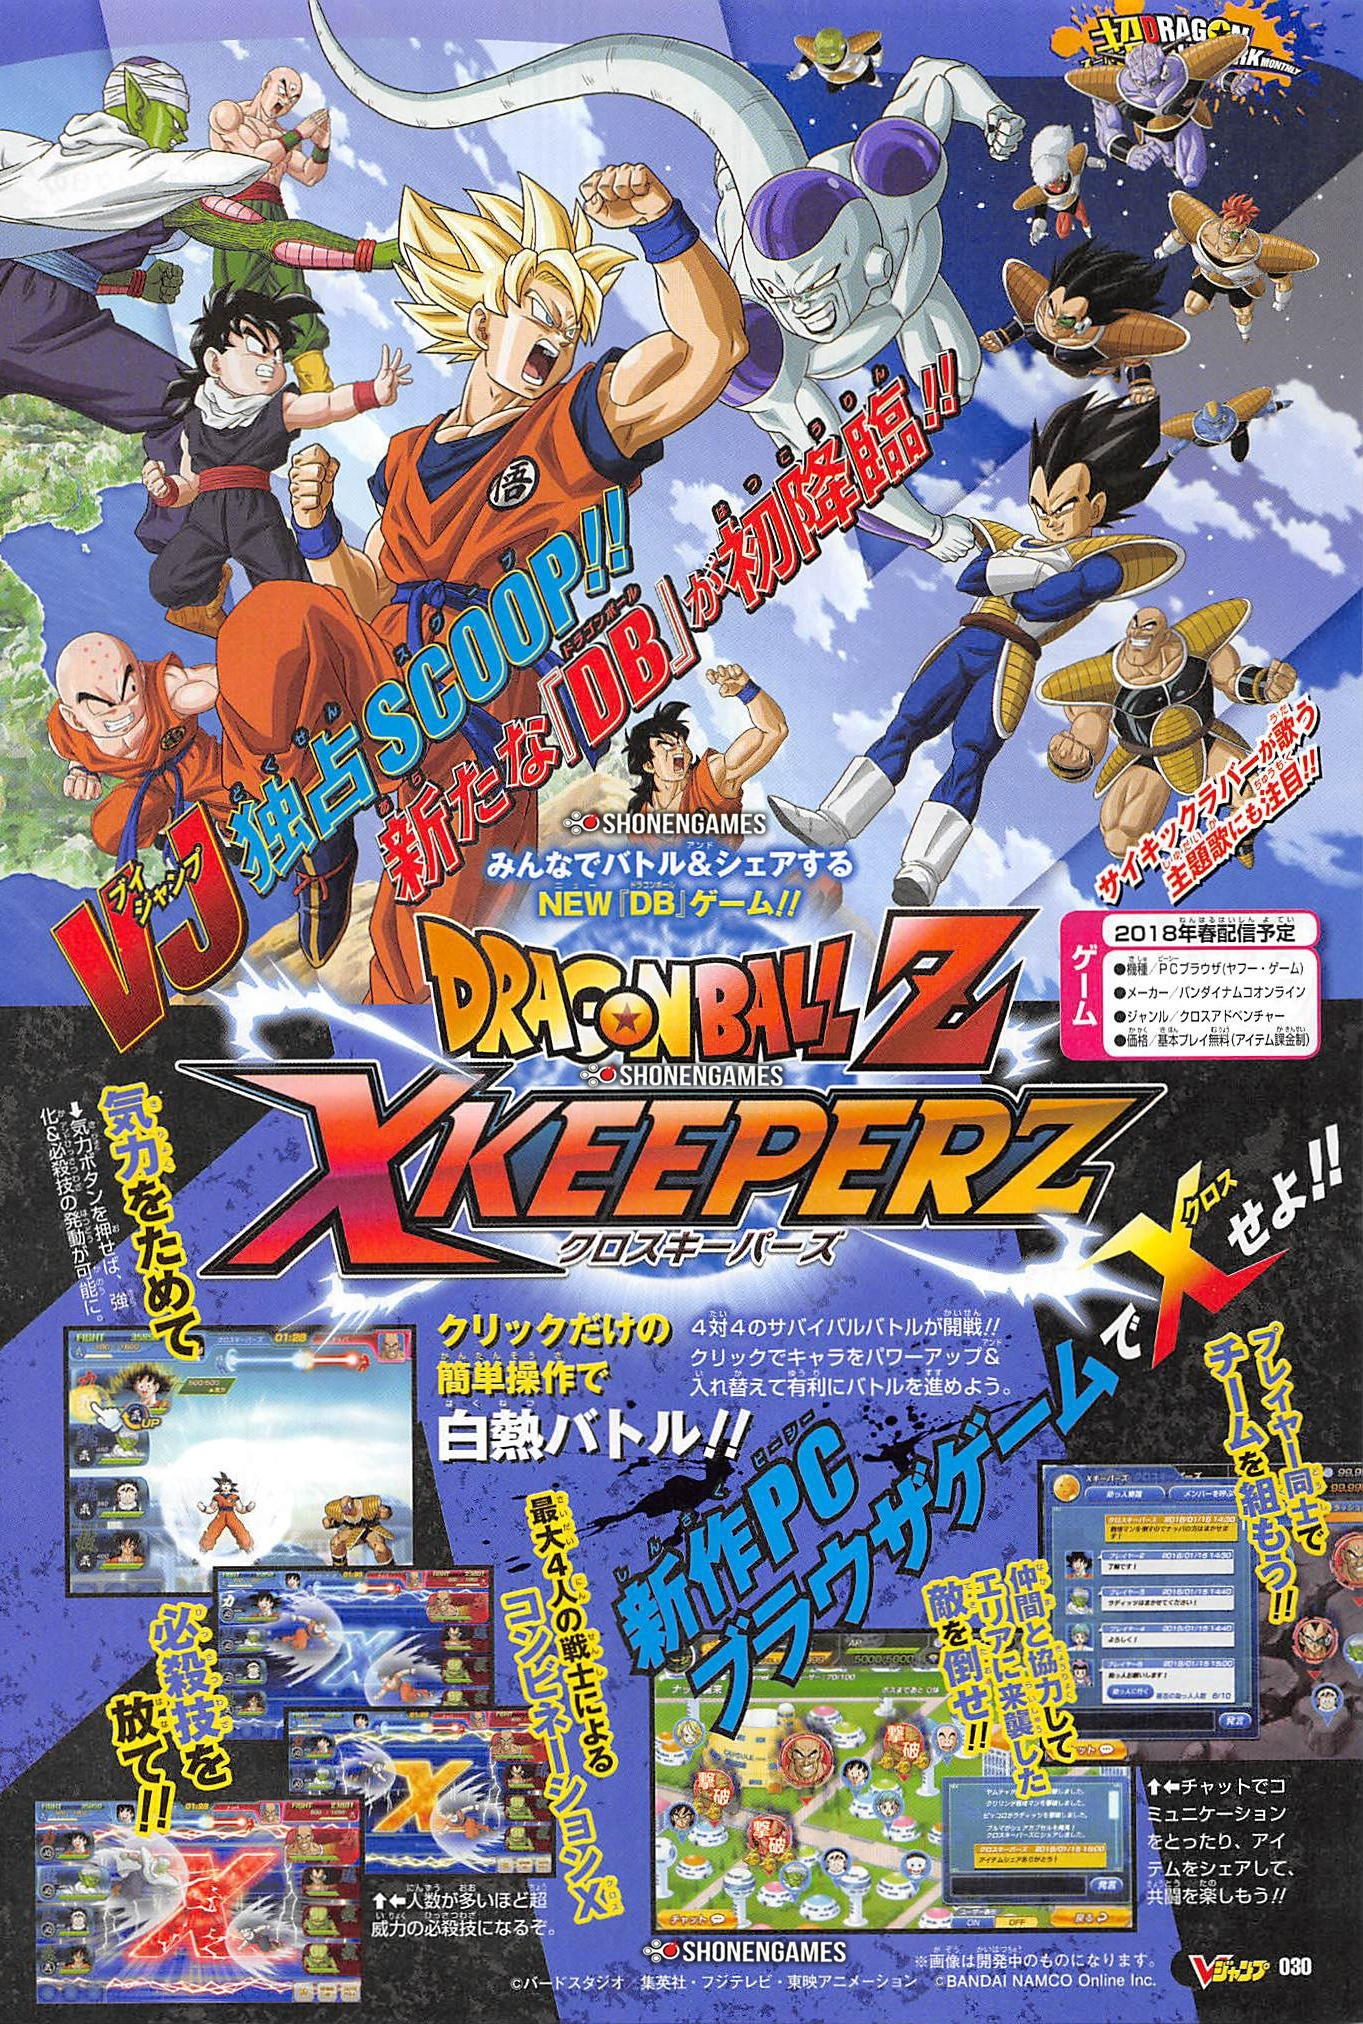 Dragon Ball Z XkeeperZ  le jeu que tu n'as pas vu venir